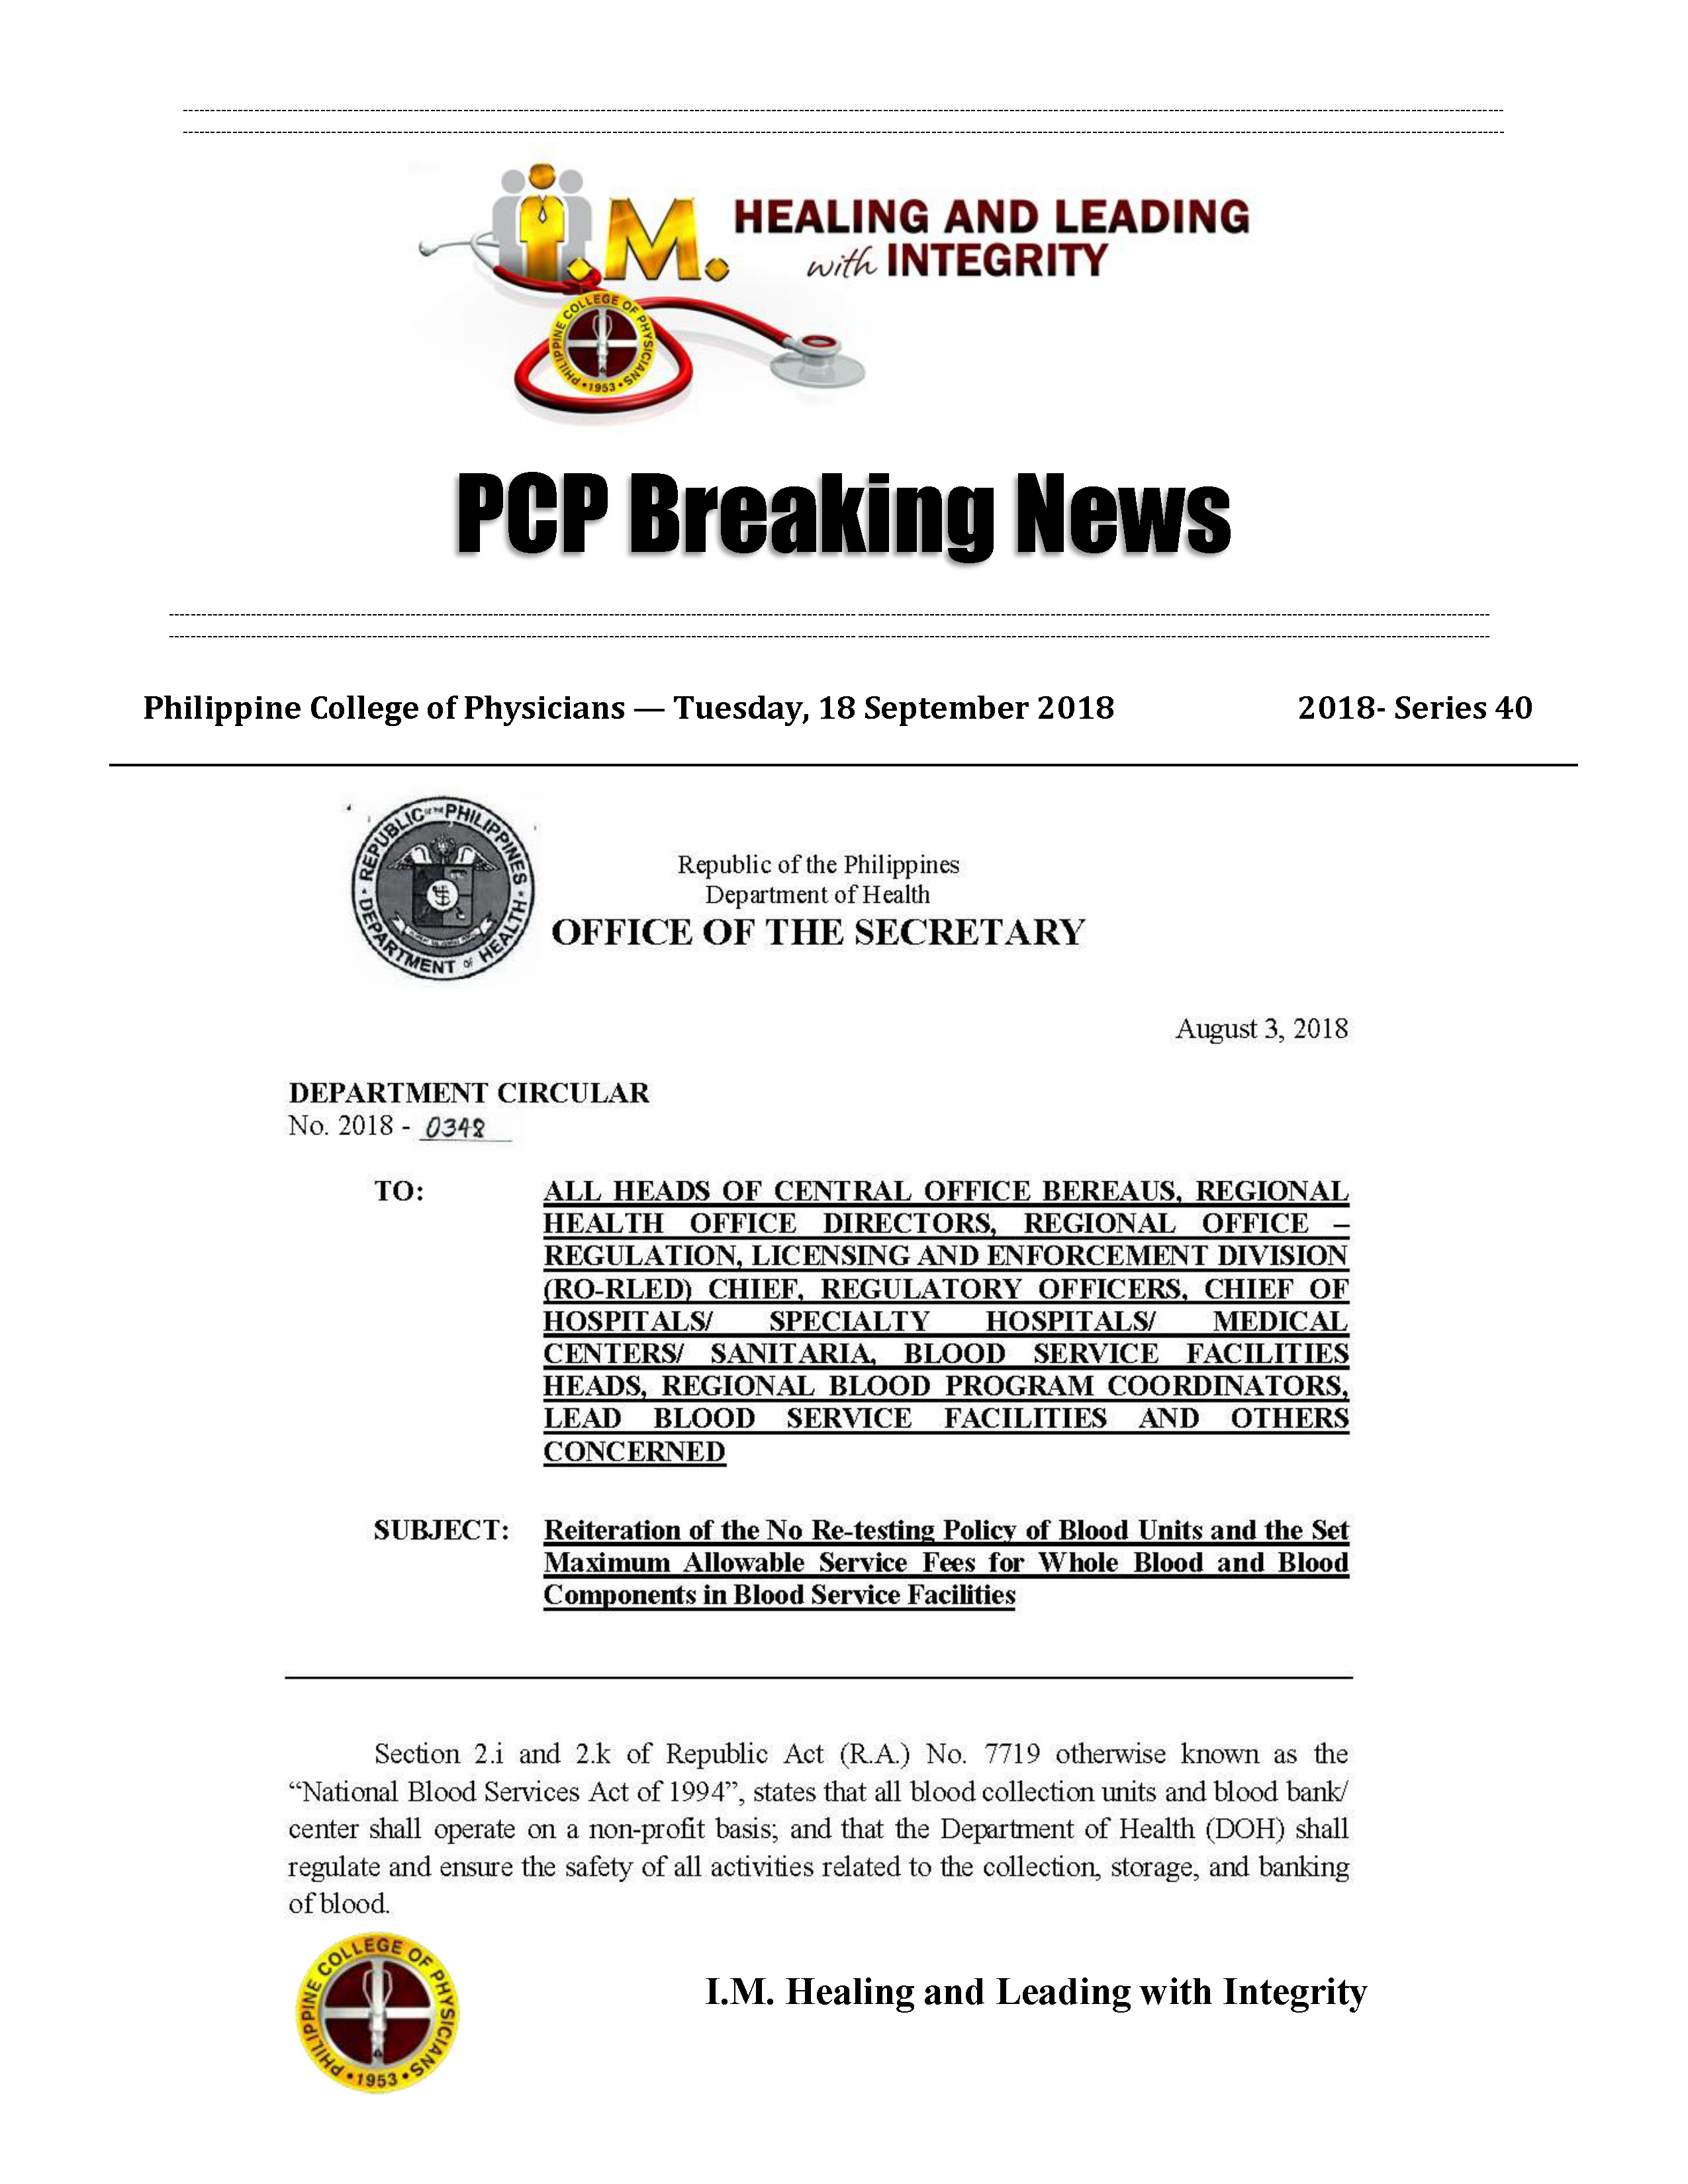 PCP Breaking News 2018 series 40 Page 1